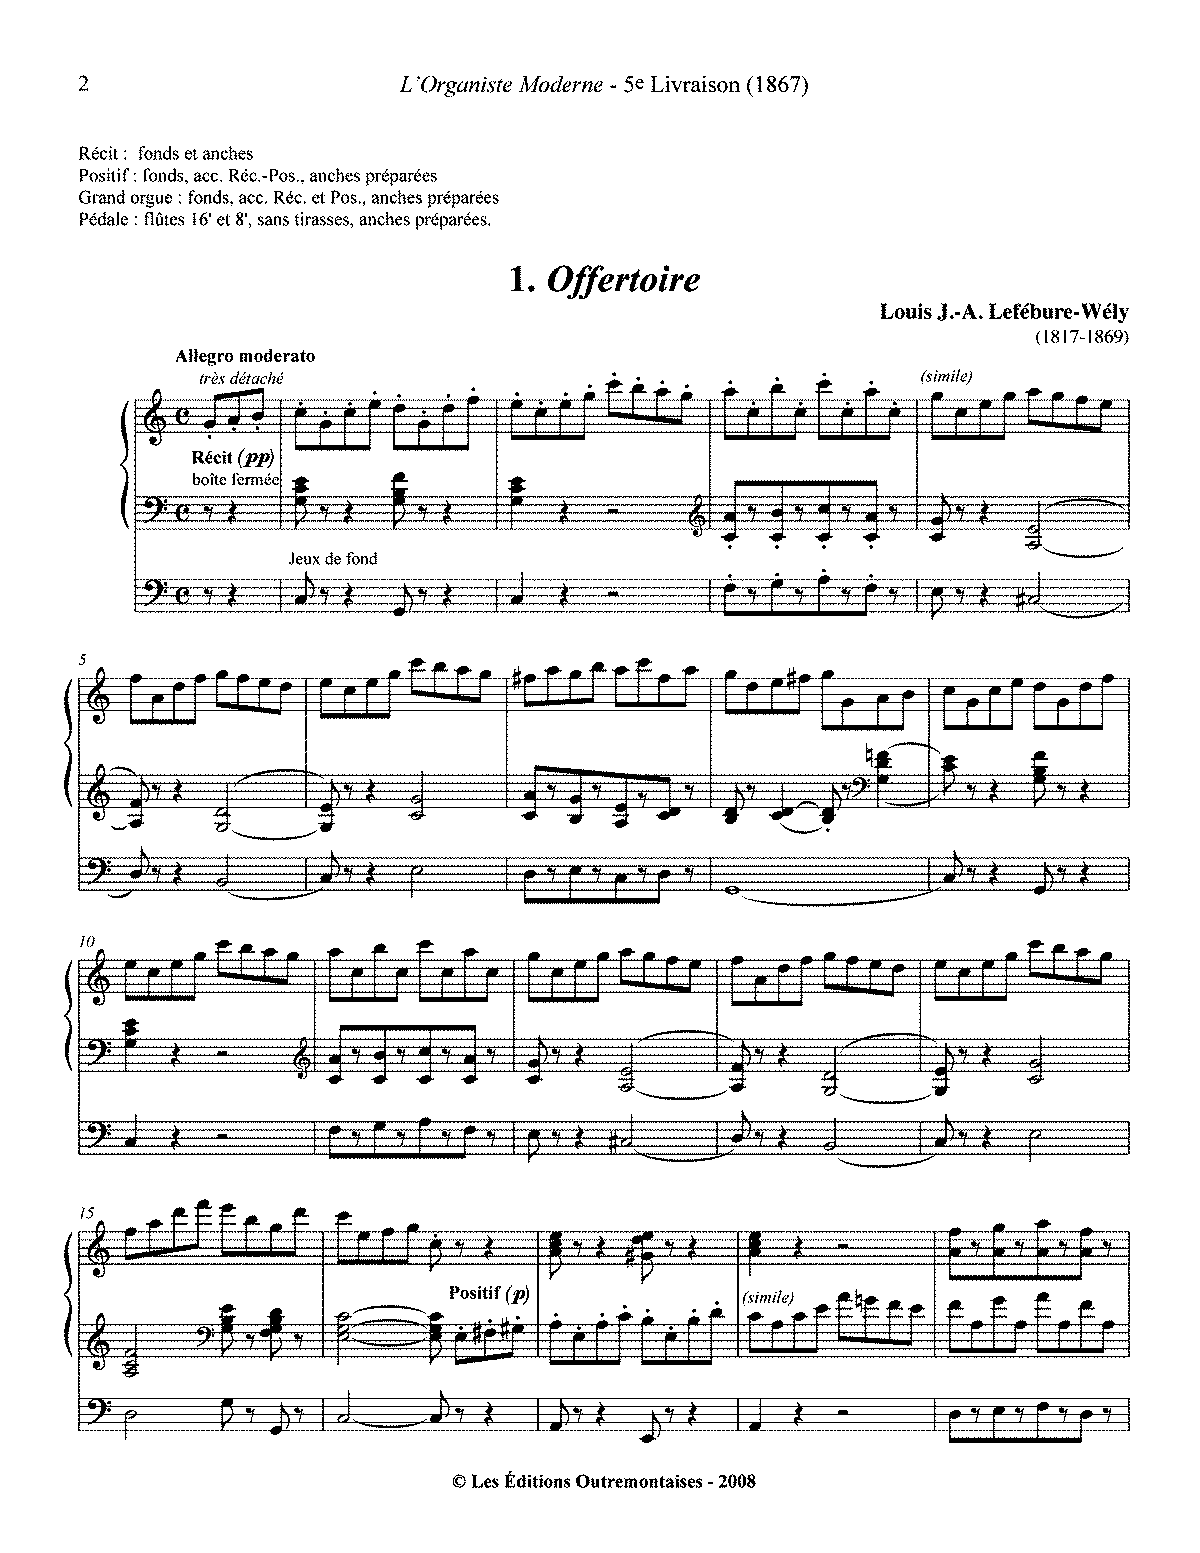 WIMA.c17d-Lefebure-Wely 05 1.Offertoire.pdf